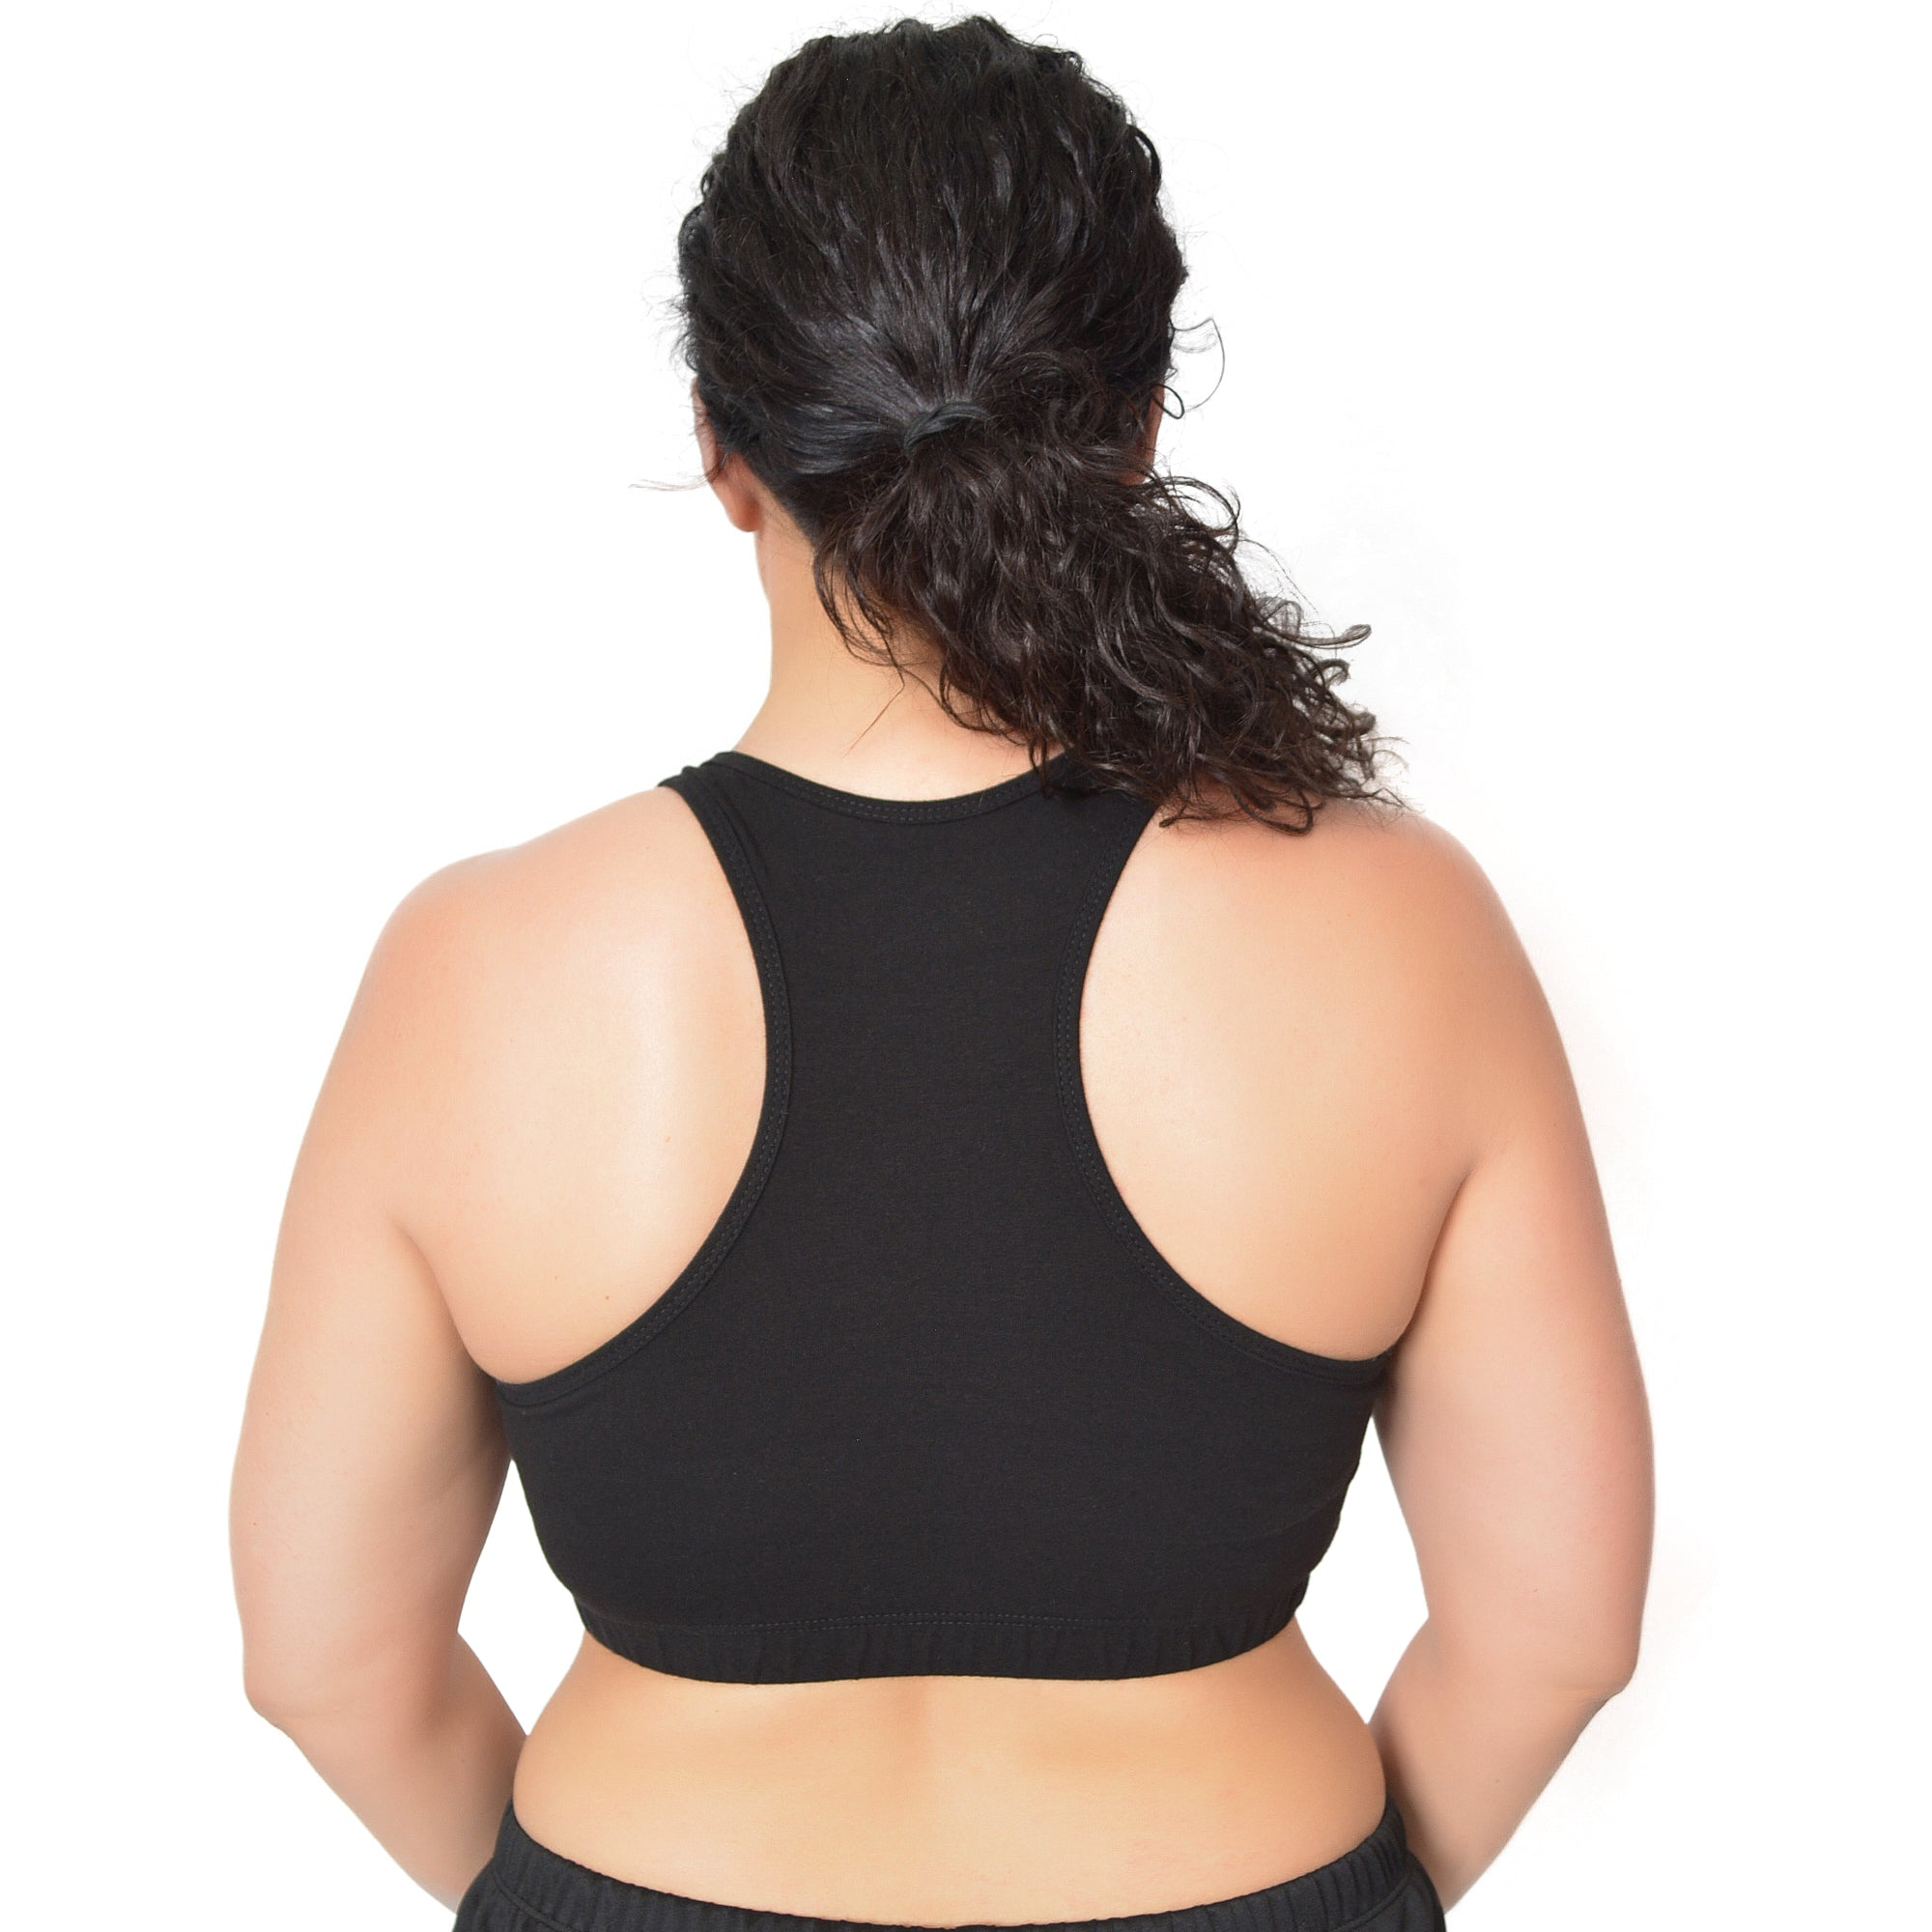 Women's Plus Size Bardot Cotton Racerback Sports Bra